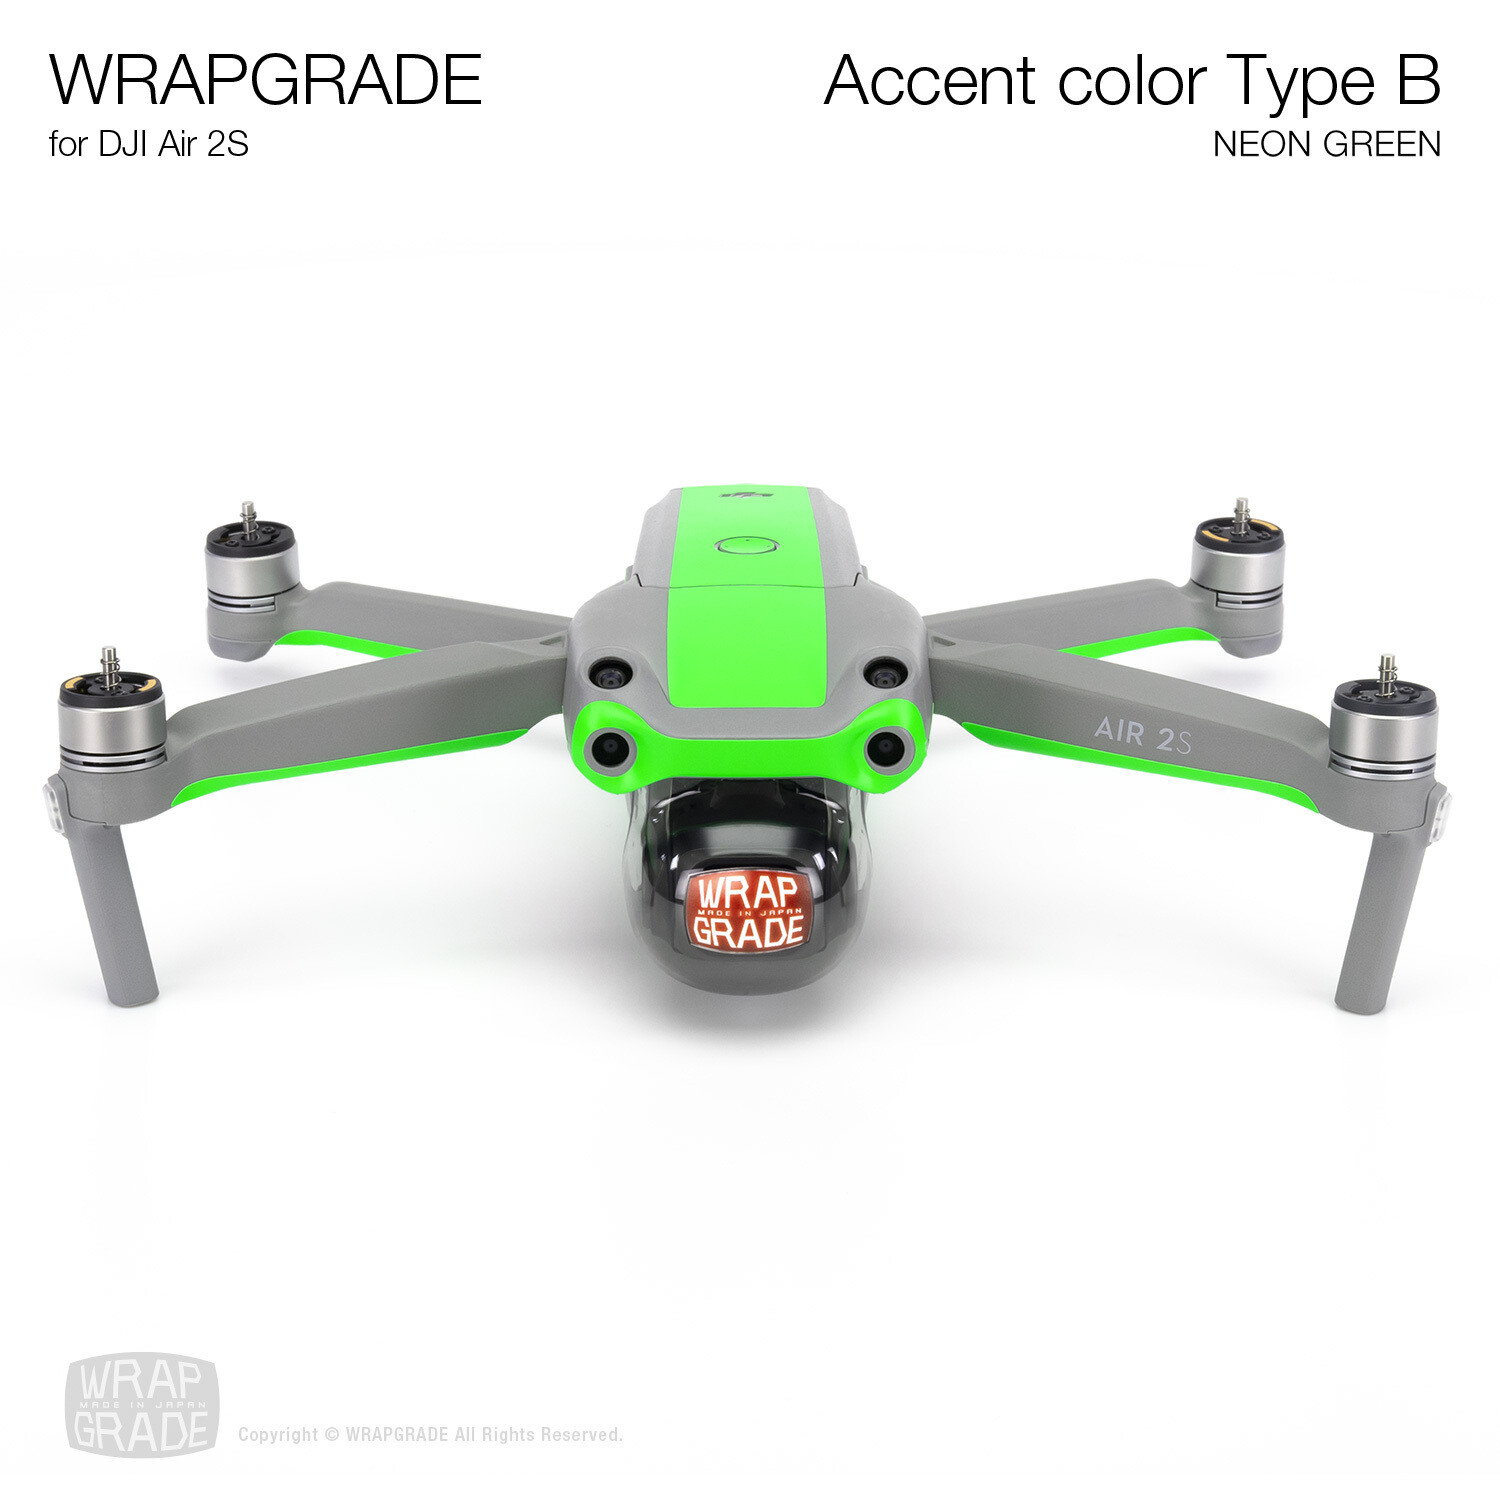 Wrapgrade Skin for DJI Air 2S | Accent Color B (NEON GREEN)